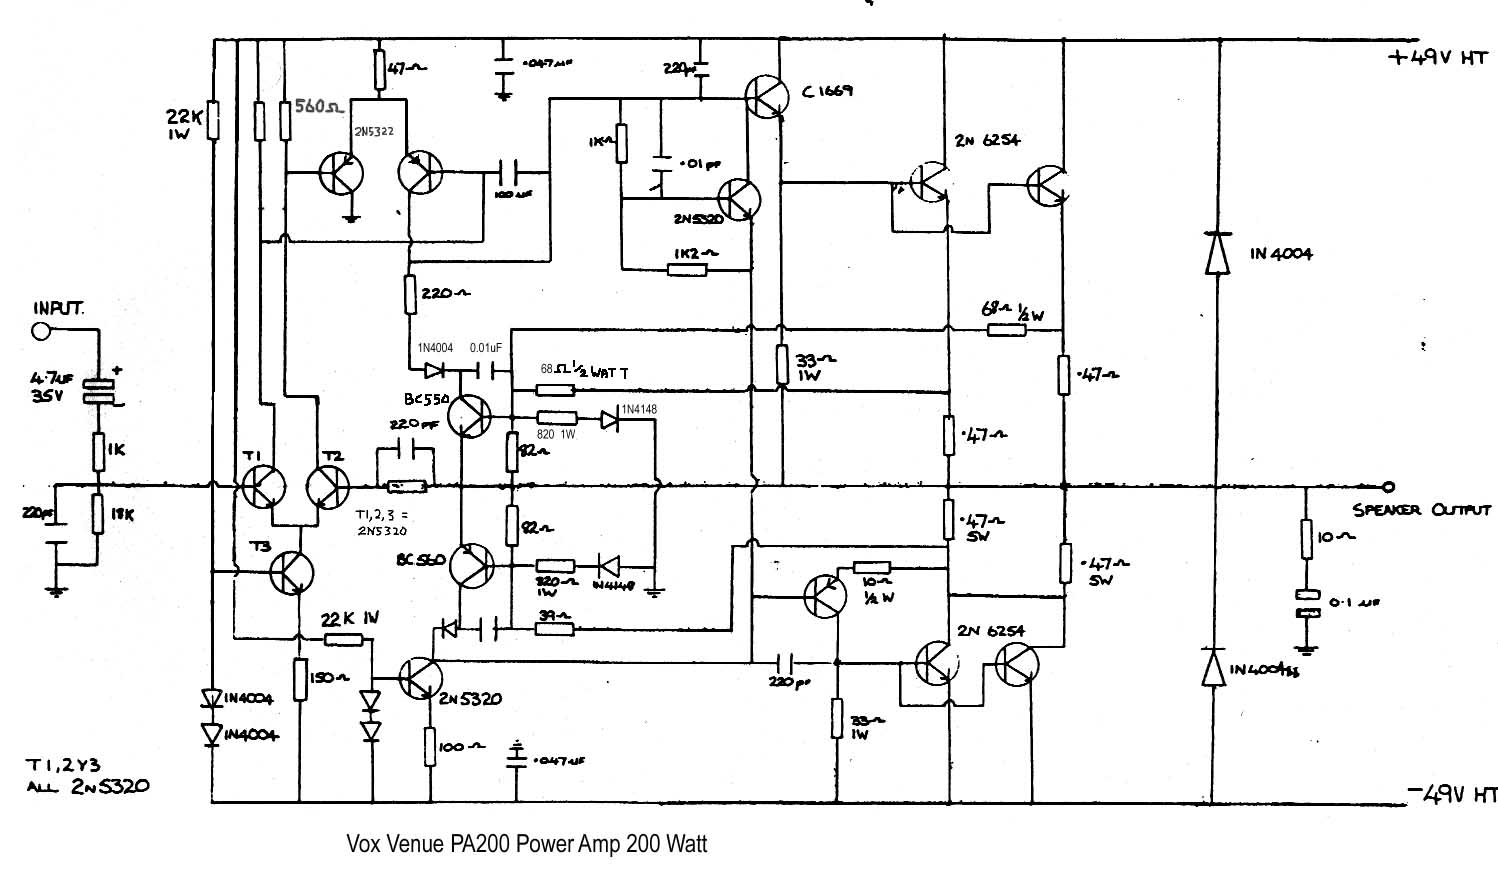 vox vintage circuit diagrams guitar amplifier schematics venue 200 watt power amp stage for pa200 1985, [ download diagram ]